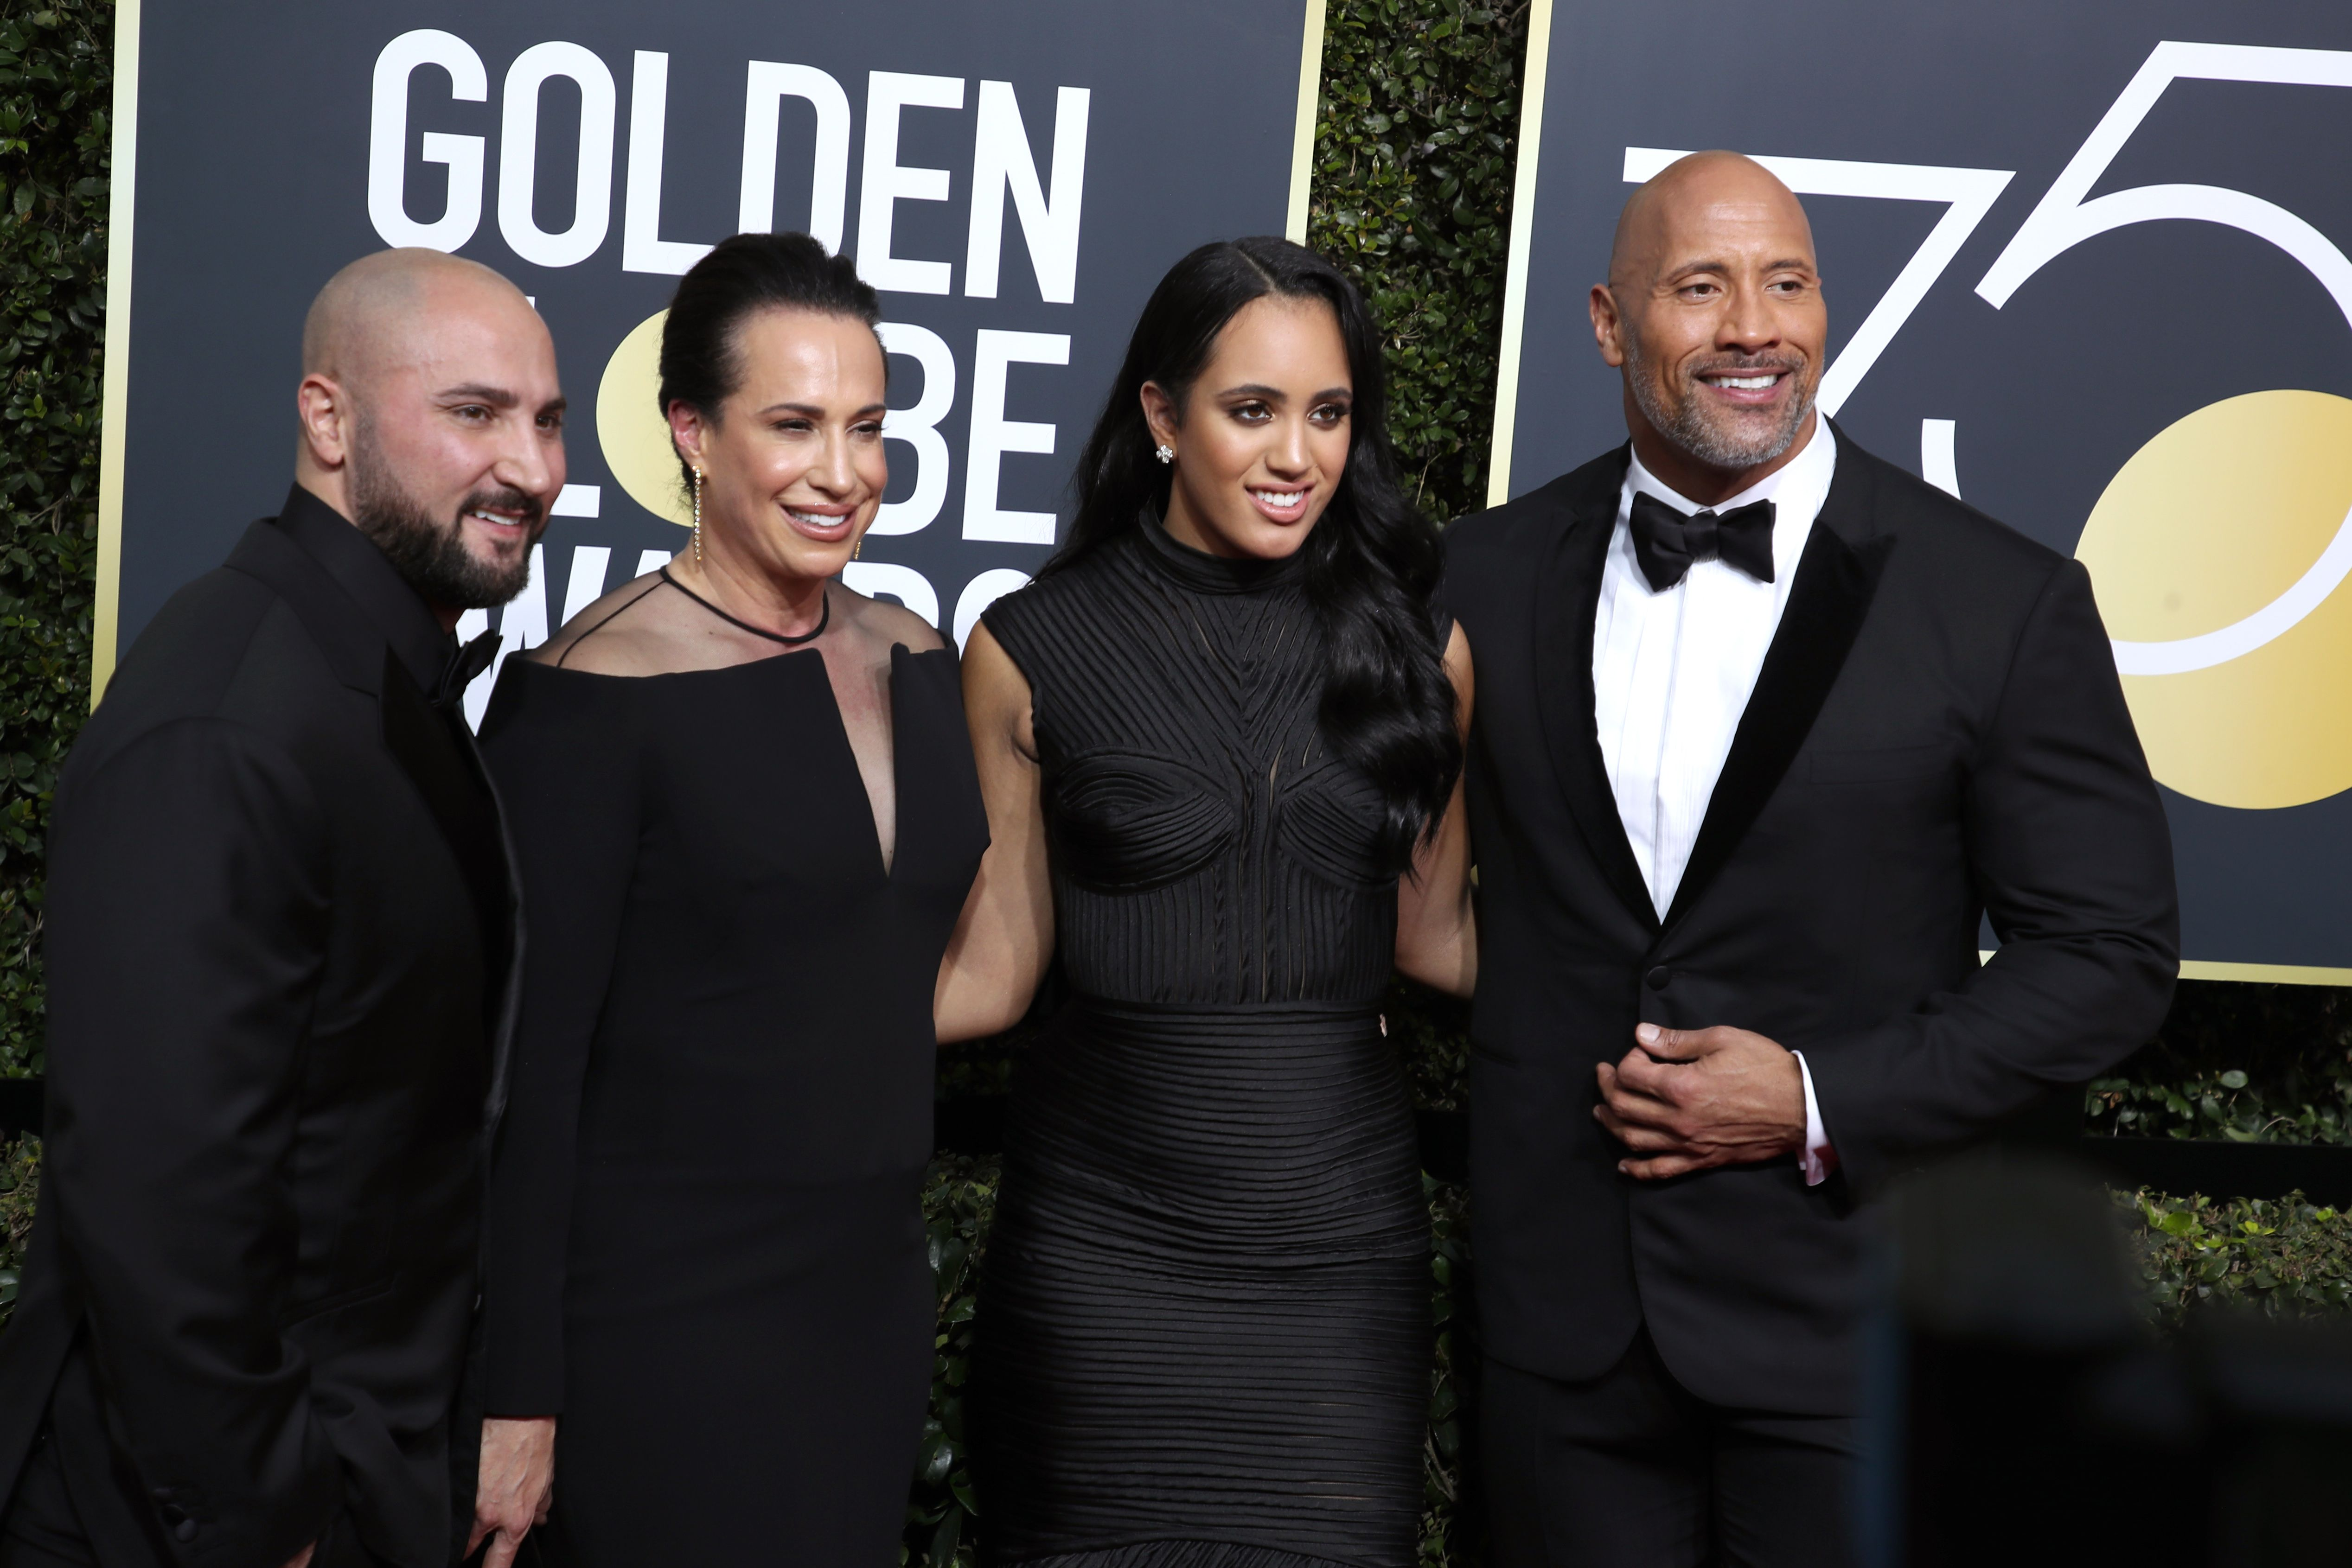 Dave Rienzi, Dany Garcia, Simone Garcia Johnson and Dwayne Johnson75th Annual Golden Globe Awards, Arrivals, Los Angeles, USA - 07 Jan 2018